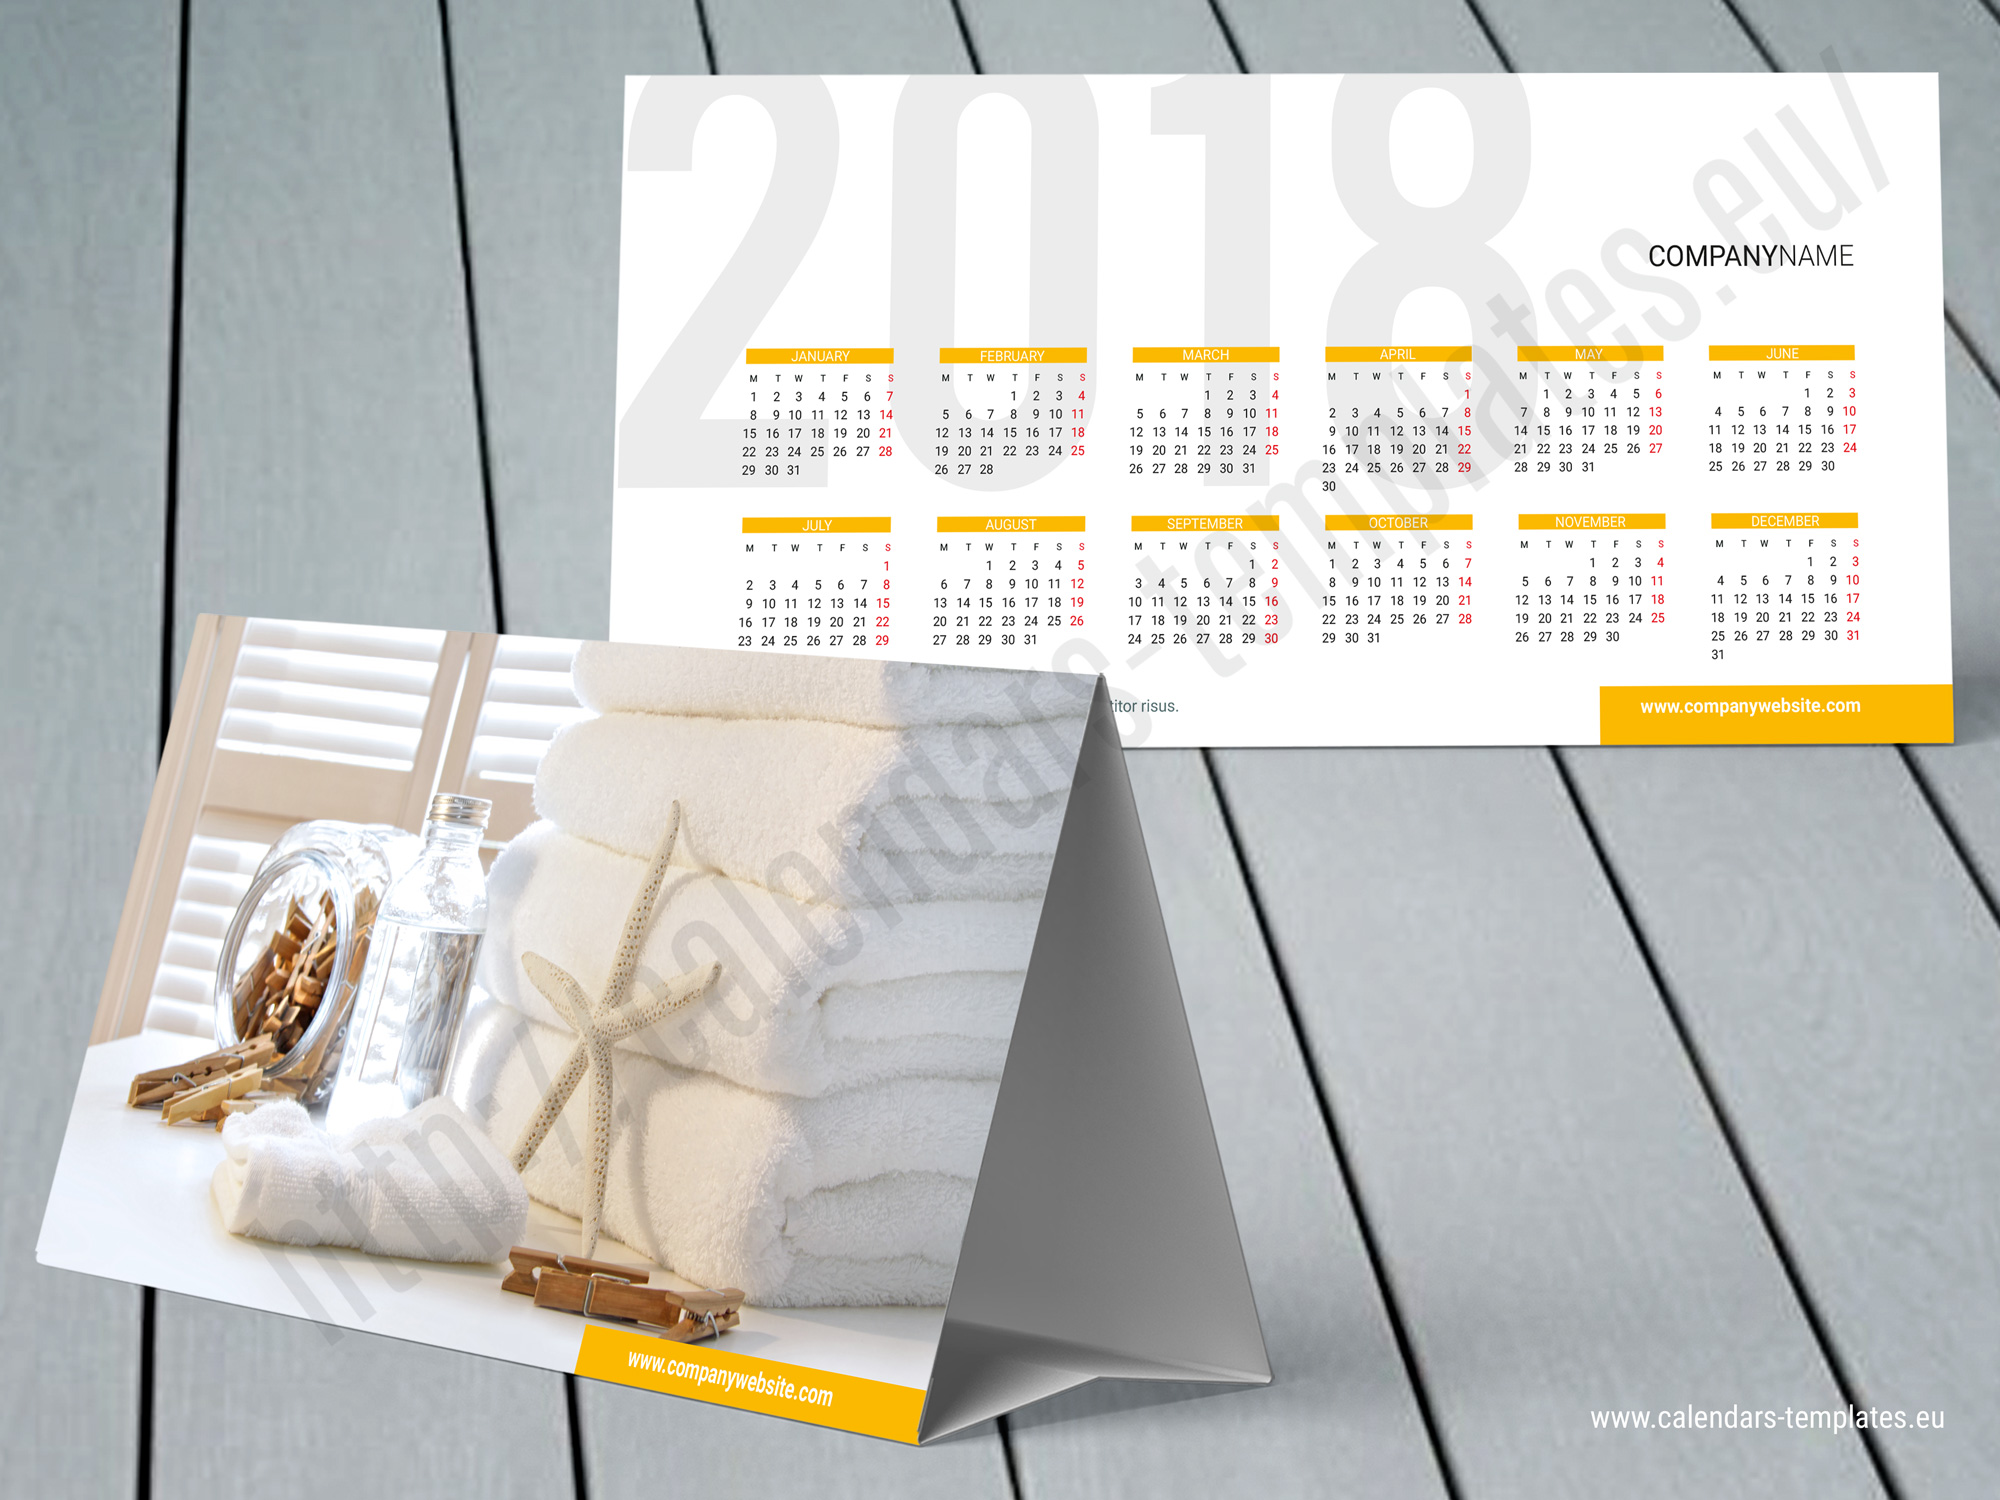 Custom Tent Calendar 2018 Desk Photo Template  sc 1 st  Desk Design Ideas & Desk Tent Calendar | Desk Design Ideas